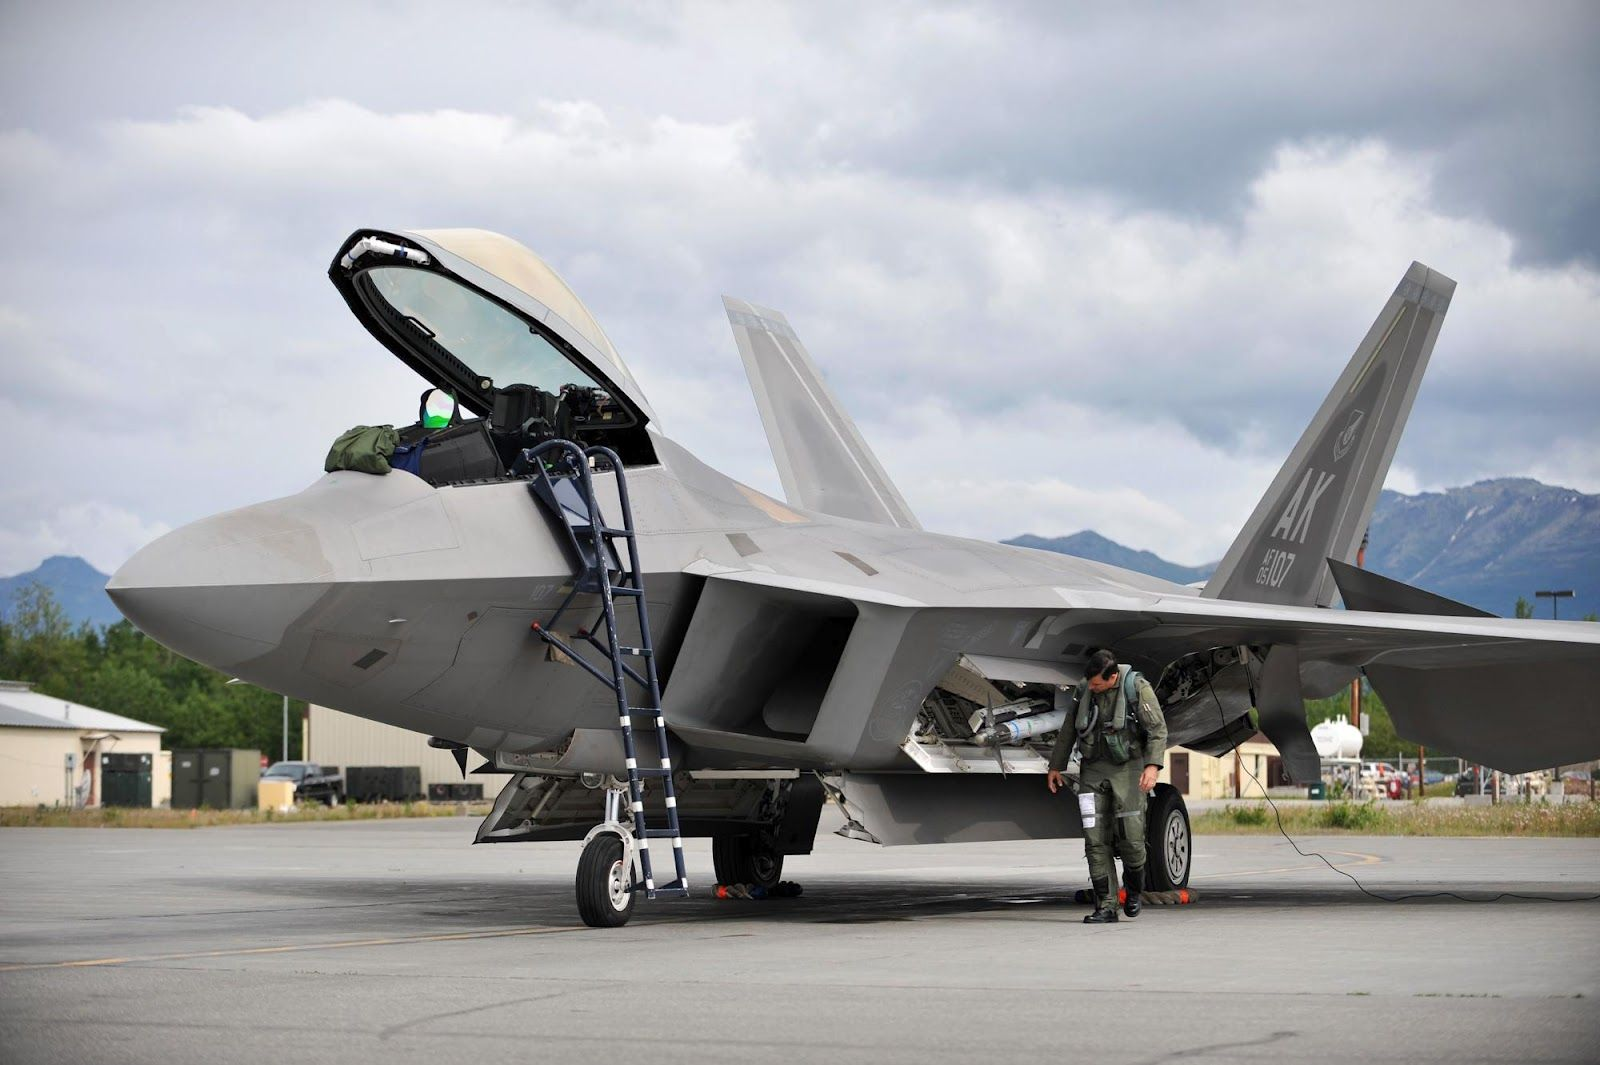 F22 Raptor With Opened-canopy Aircraft Wallpaper 2430 USAF read more ? & F22 Raptor With Opened-canopy Aircraft Wallpaper 2430 USAF read more ...